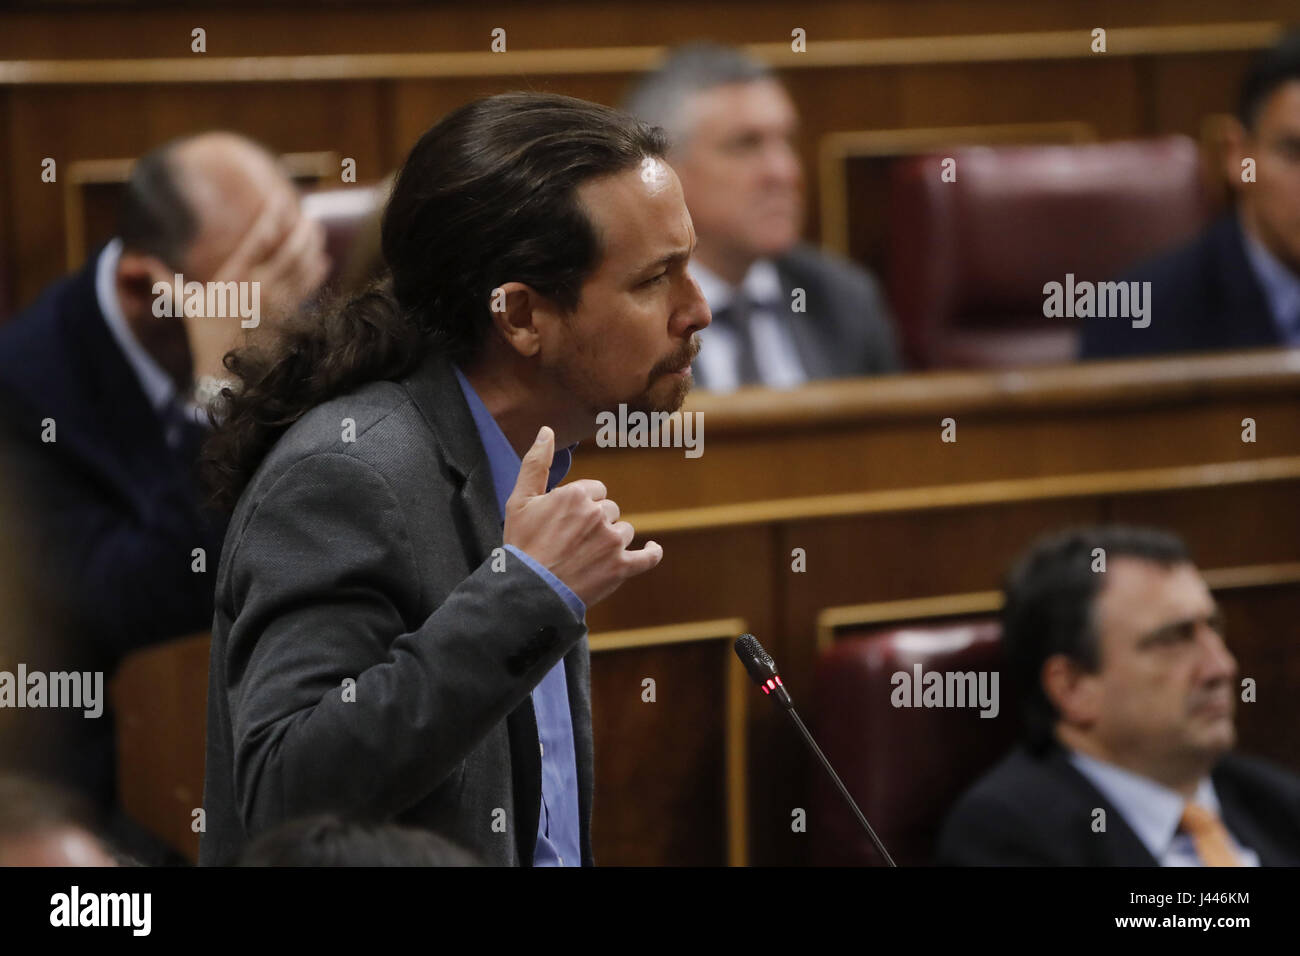 Madrid, Spain. 10th May, 2017. Leader of left-wing party Podemos, Pablo Iglesias, poses a question during a Government's - Stock Image